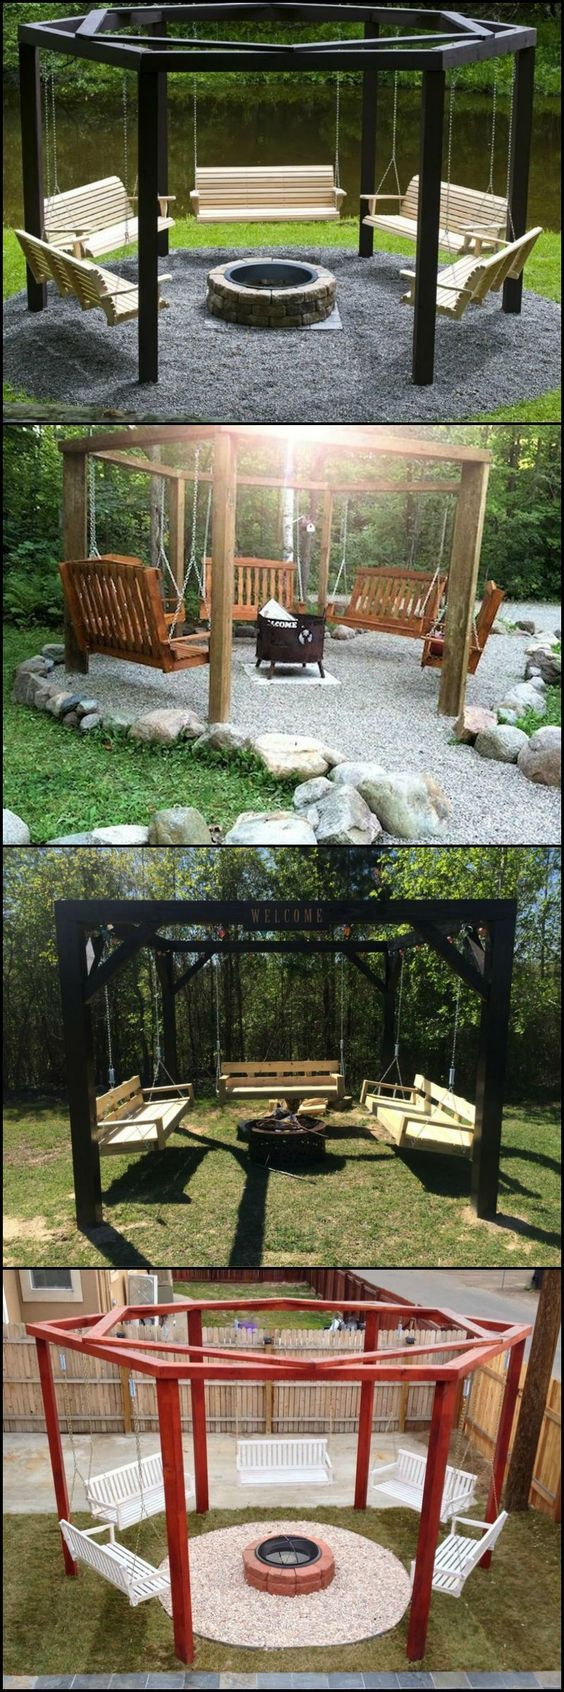 Love relaxing around a fire and also like the occasional gentle swing? This fire pit swing set combination is for you! These fire pit swing sets allow you to enjoy a gentle swing, and keeps you warm during cold nights... http://theownerbuildernetwork.co/3uhm Isn't this a perfect gathering spot for your family and friends?: